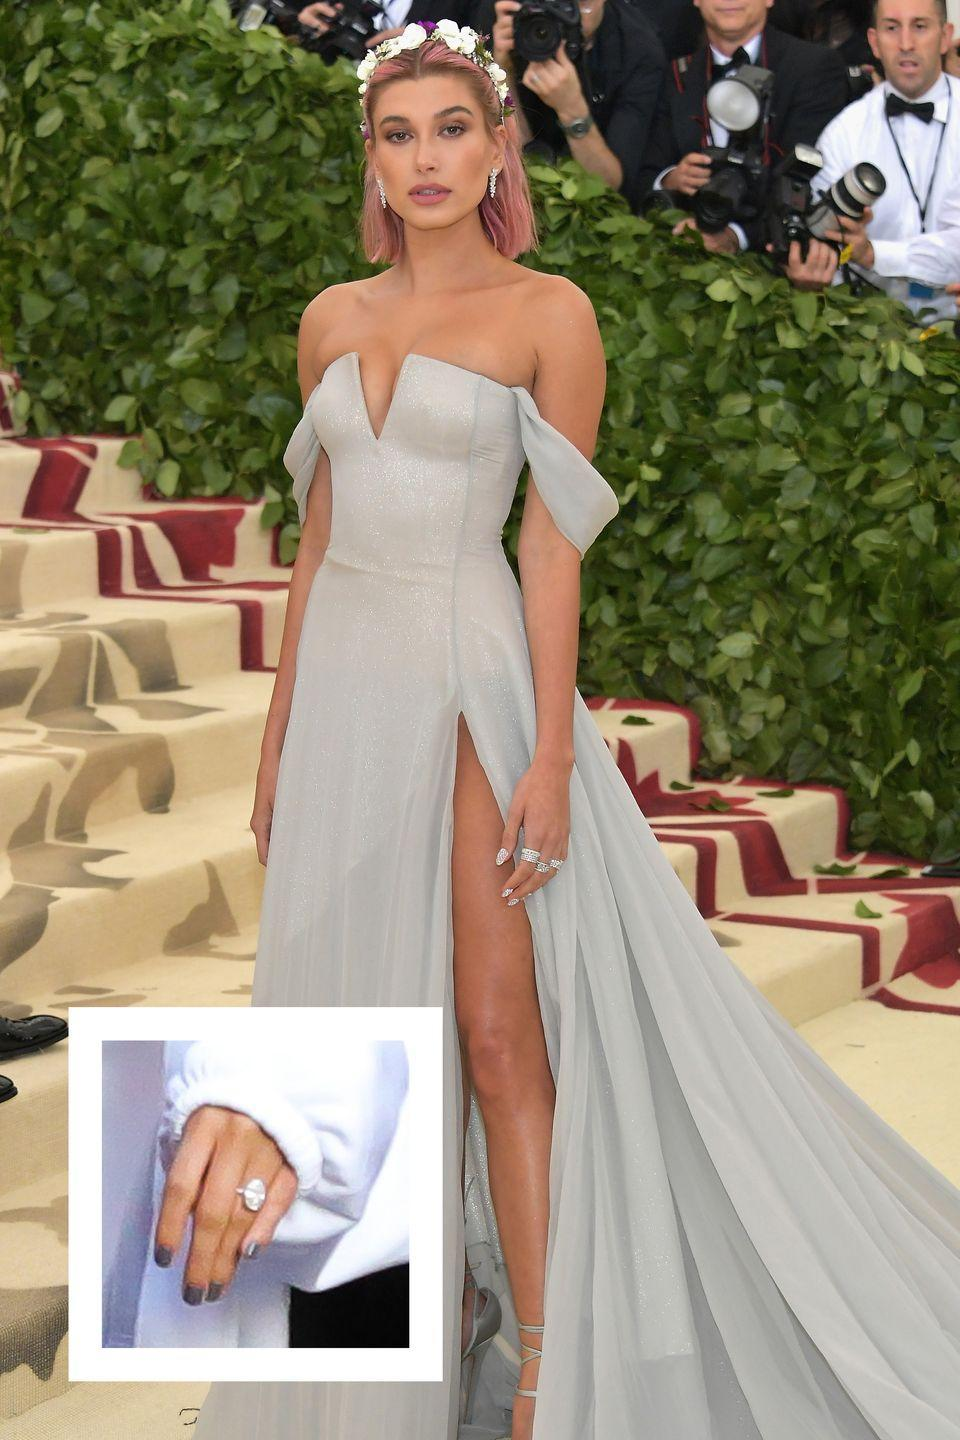 """<p>Justin Bieber and Hailey Baldwin had a whirlwind engagement. Hailey's engagement ring is an oval shaped whopper. The center oval stone is between six and ten carats large, and reportedly cost up to $500,000, <a href=""""https://www.cosmopolitan.com/entertainment/a22137216/hailey-baldwin-engagement-ring-cost-justin-bieber/"""" rel=""""nofollow noopener"""" target=""""_blank"""" data-ylk=""""slk:according to Cosmopolitan."""" class=""""link rapid-noclick-resp"""">according to <em>Cosmopolitan.</em></a></p>"""